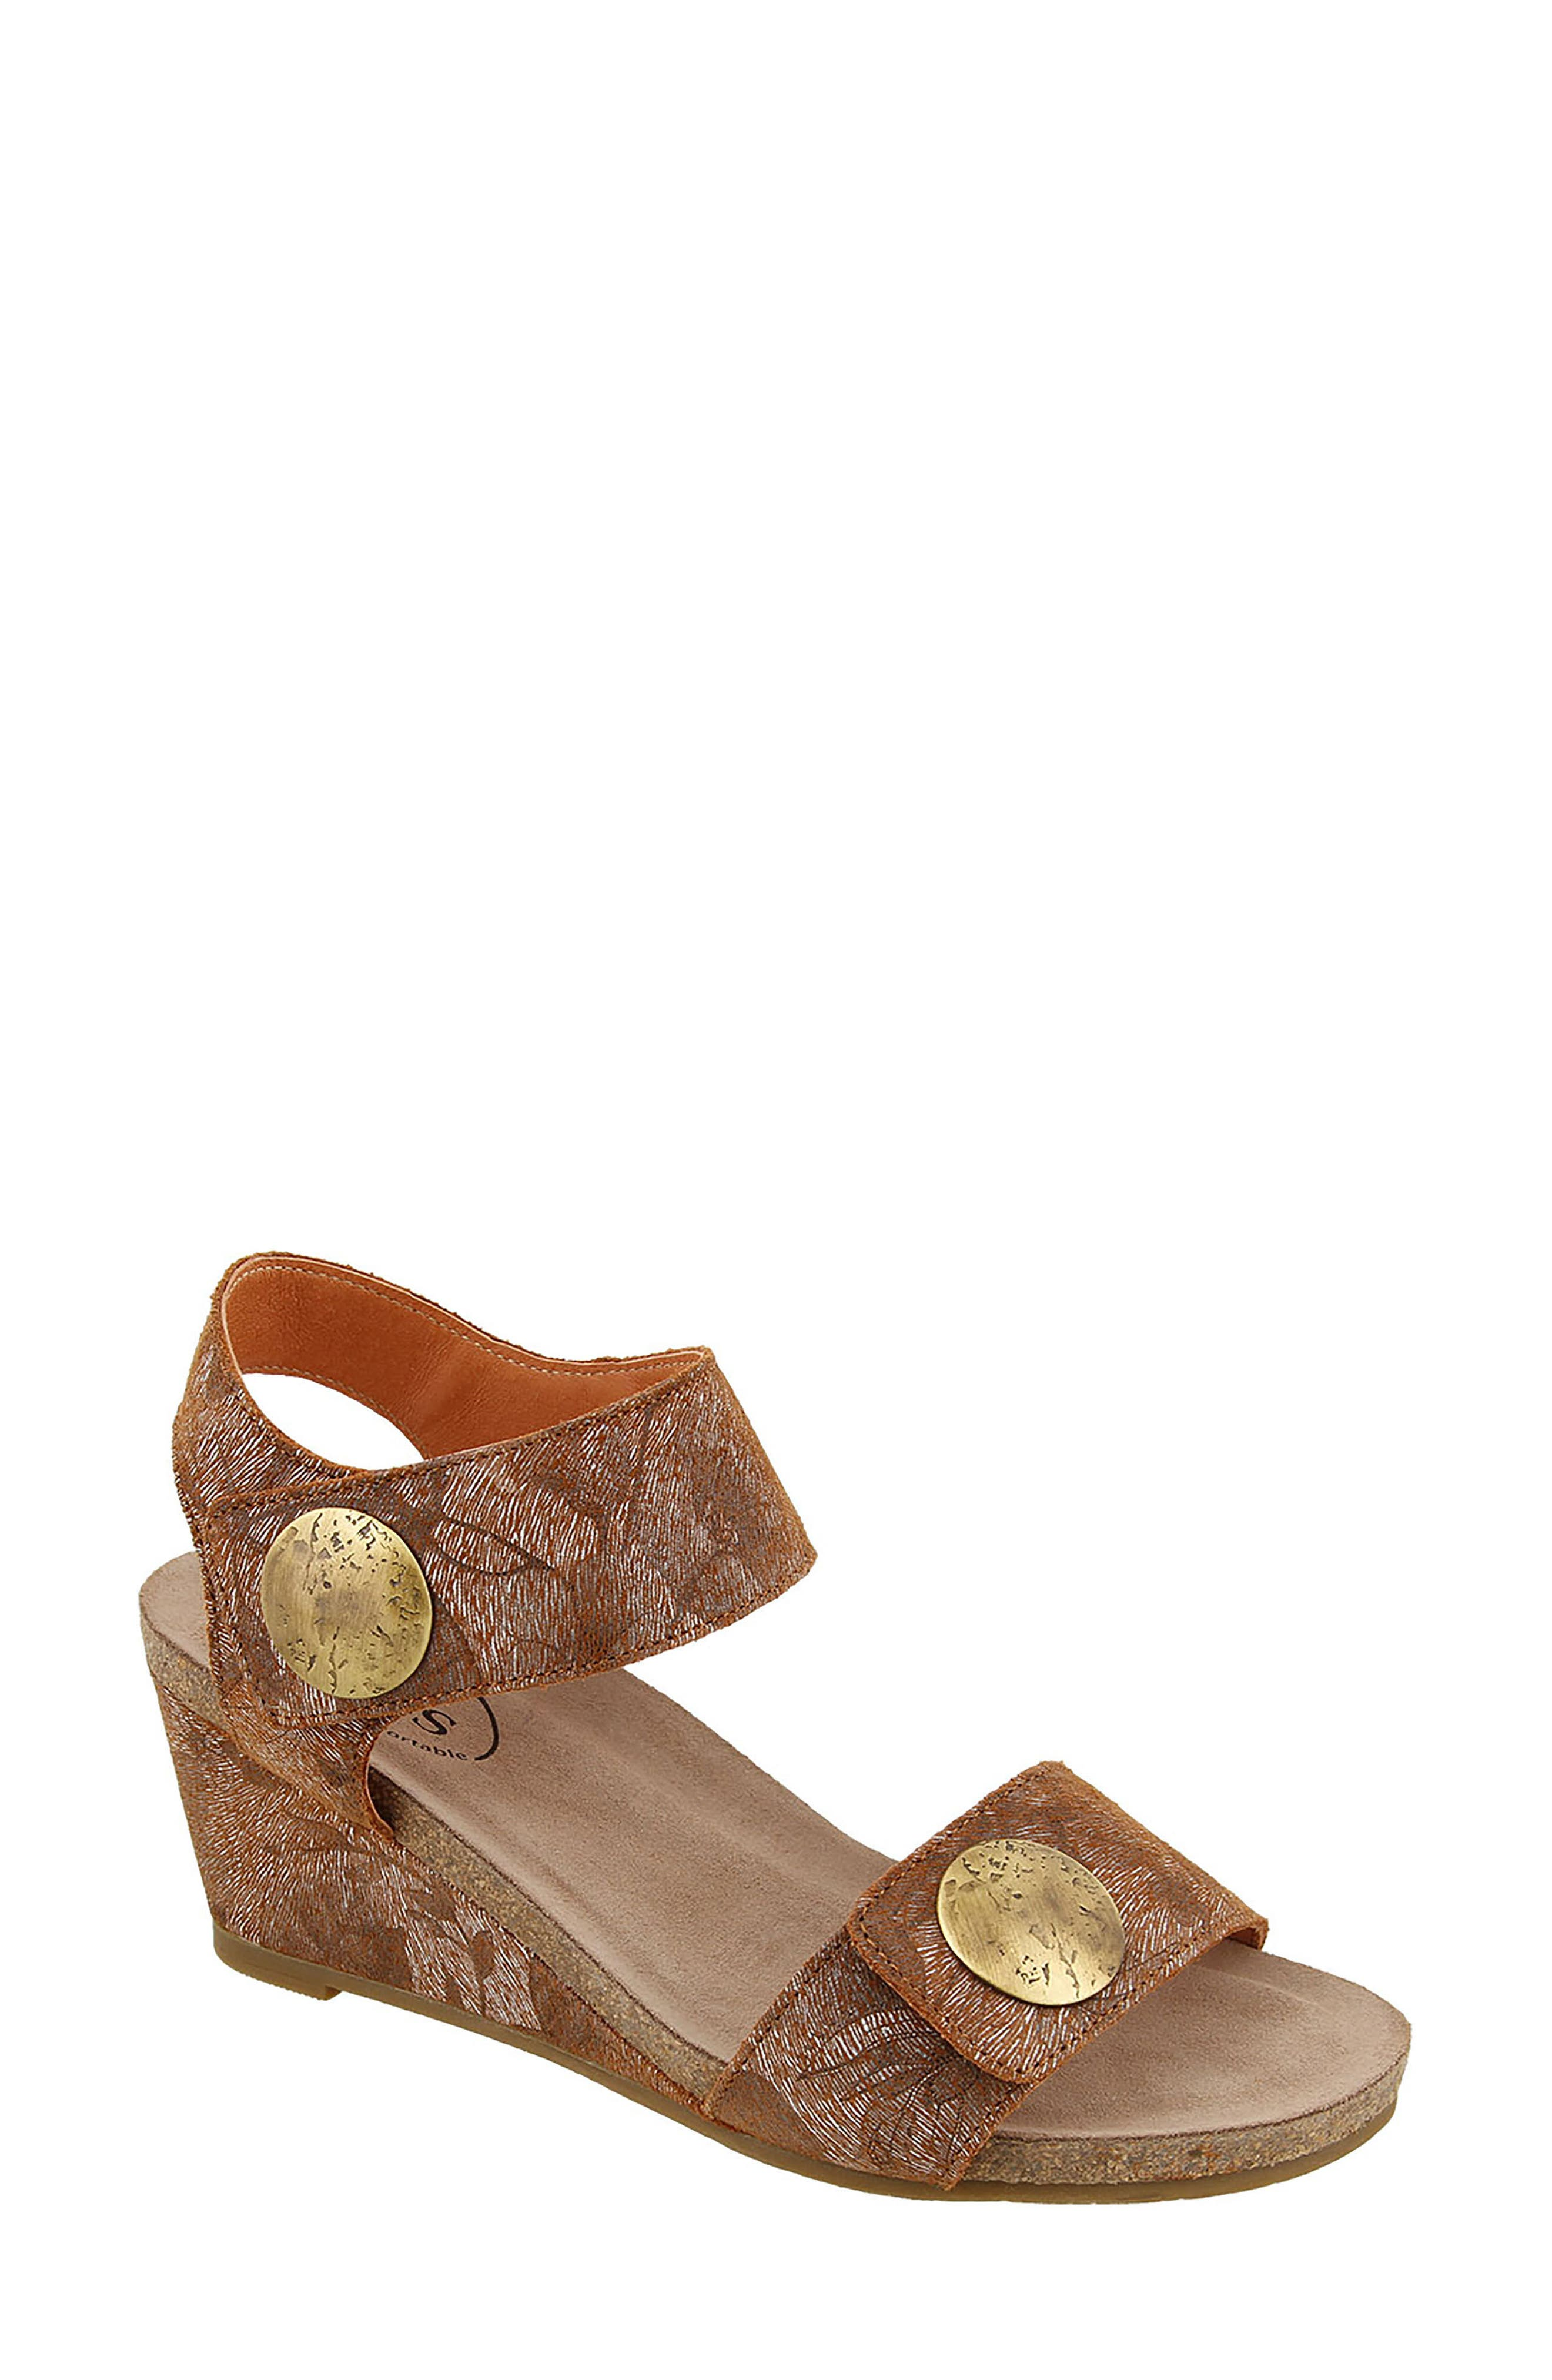 Main Image - Taos 'Carousel 2' Wedge Sandal (Women)